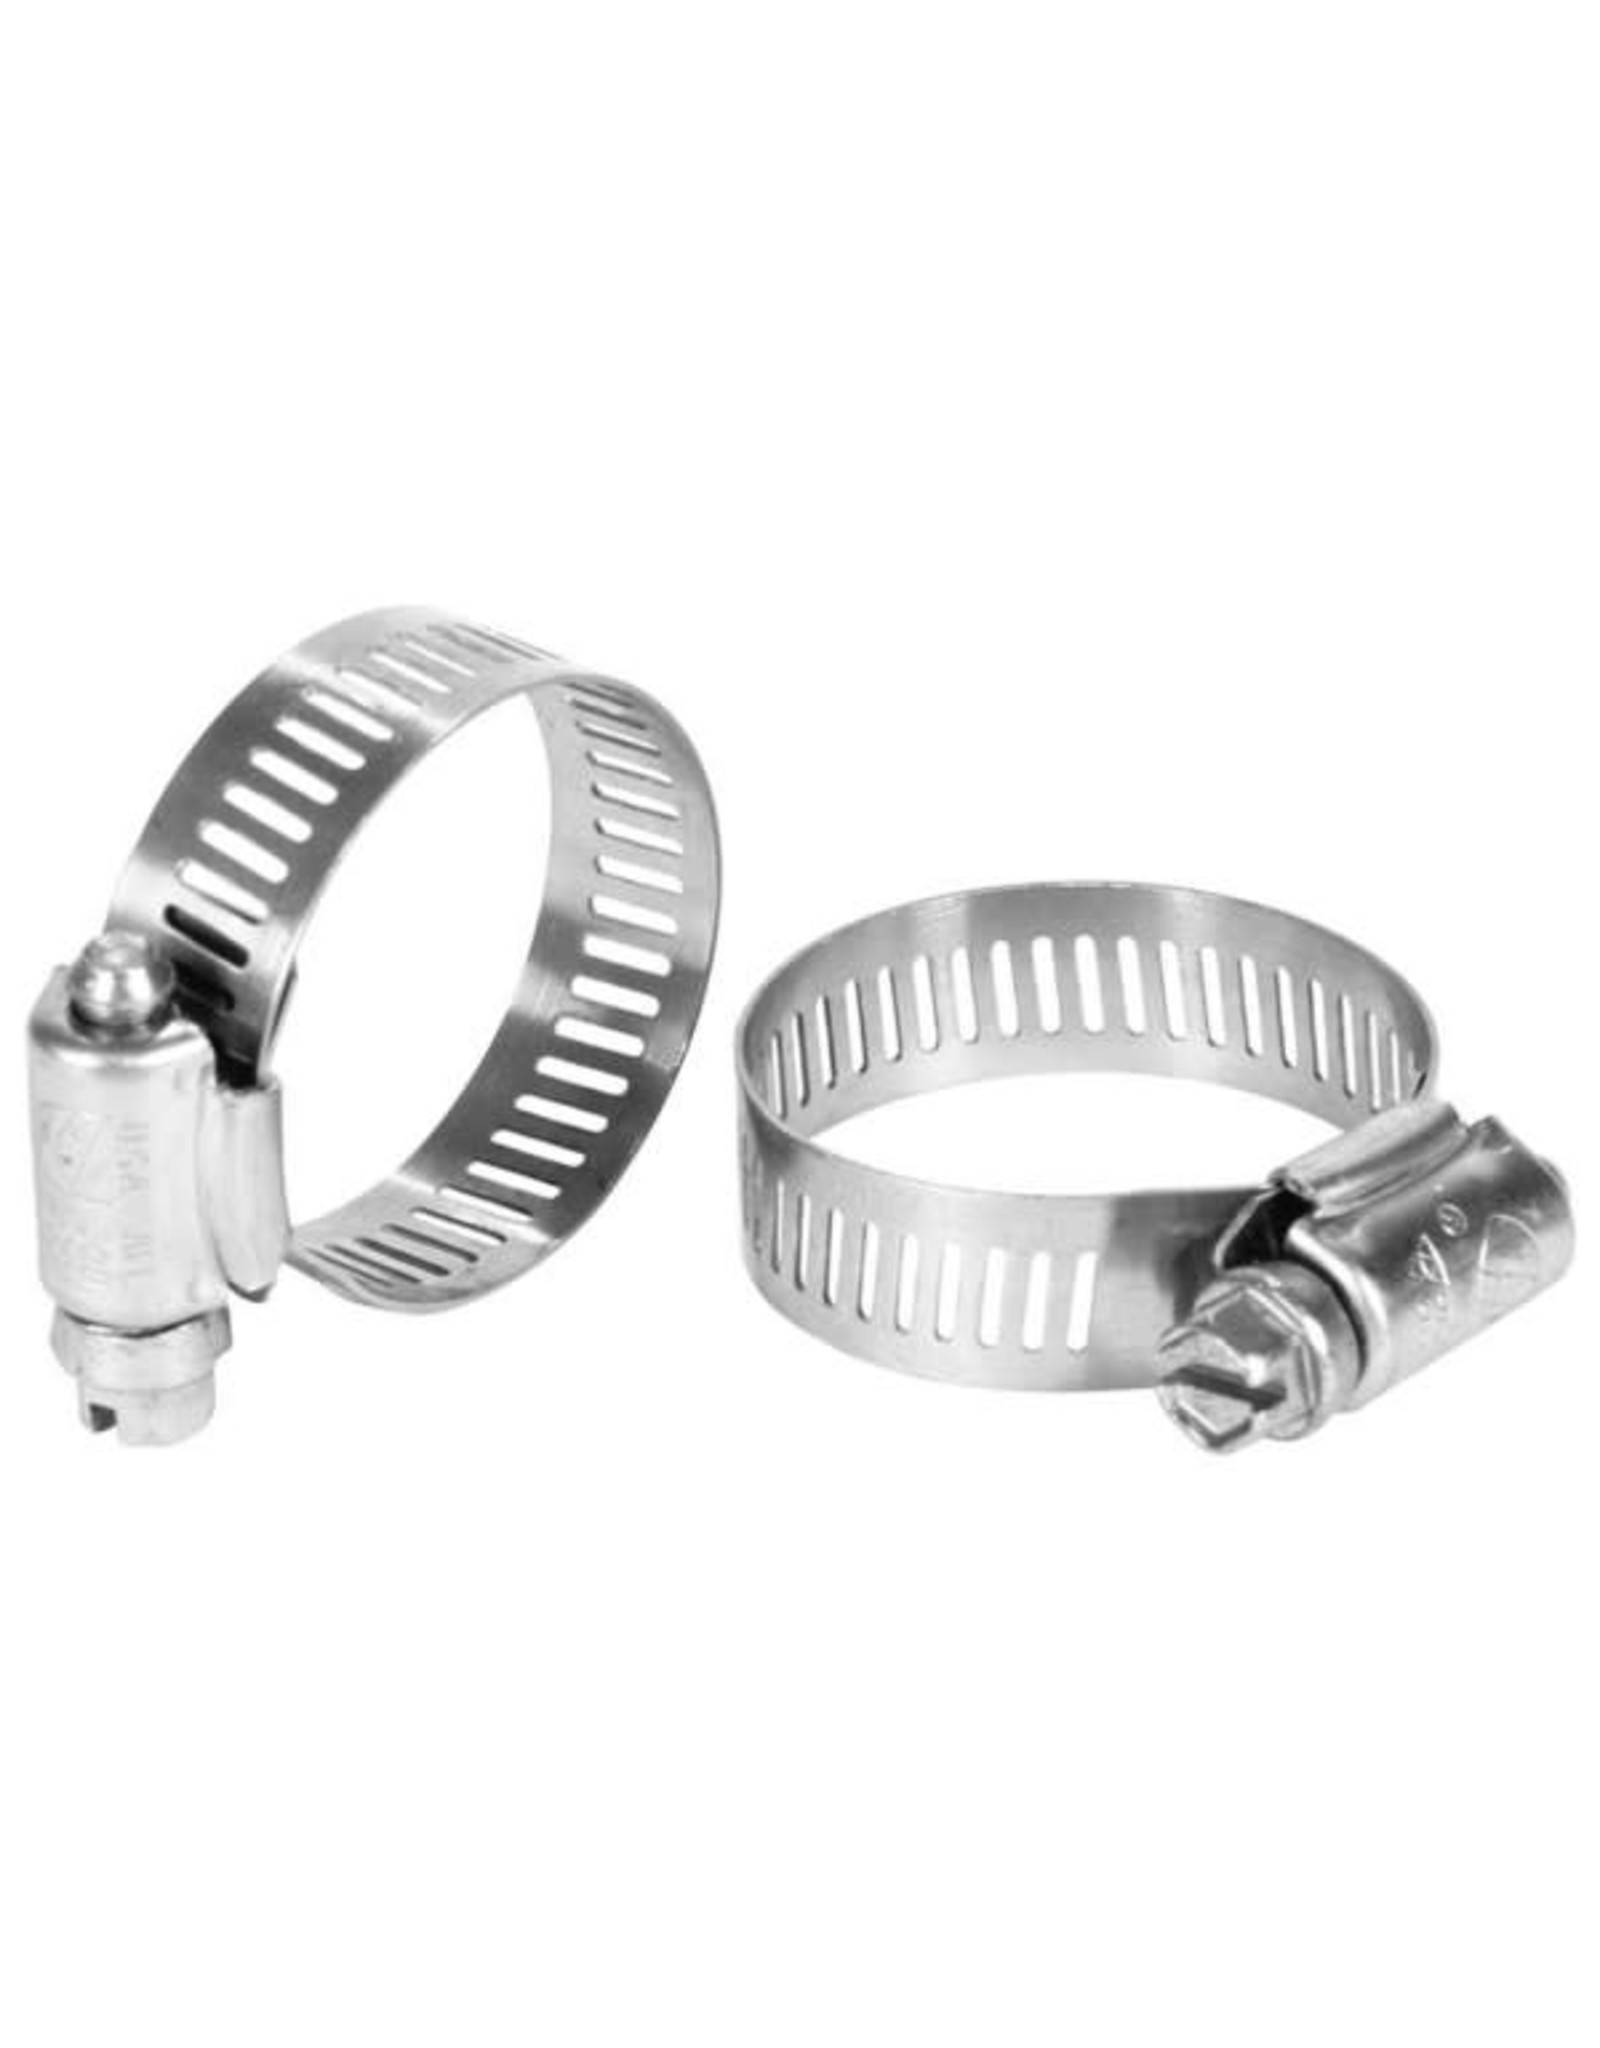 #5 S/S WORM CLAMP 2 PACK